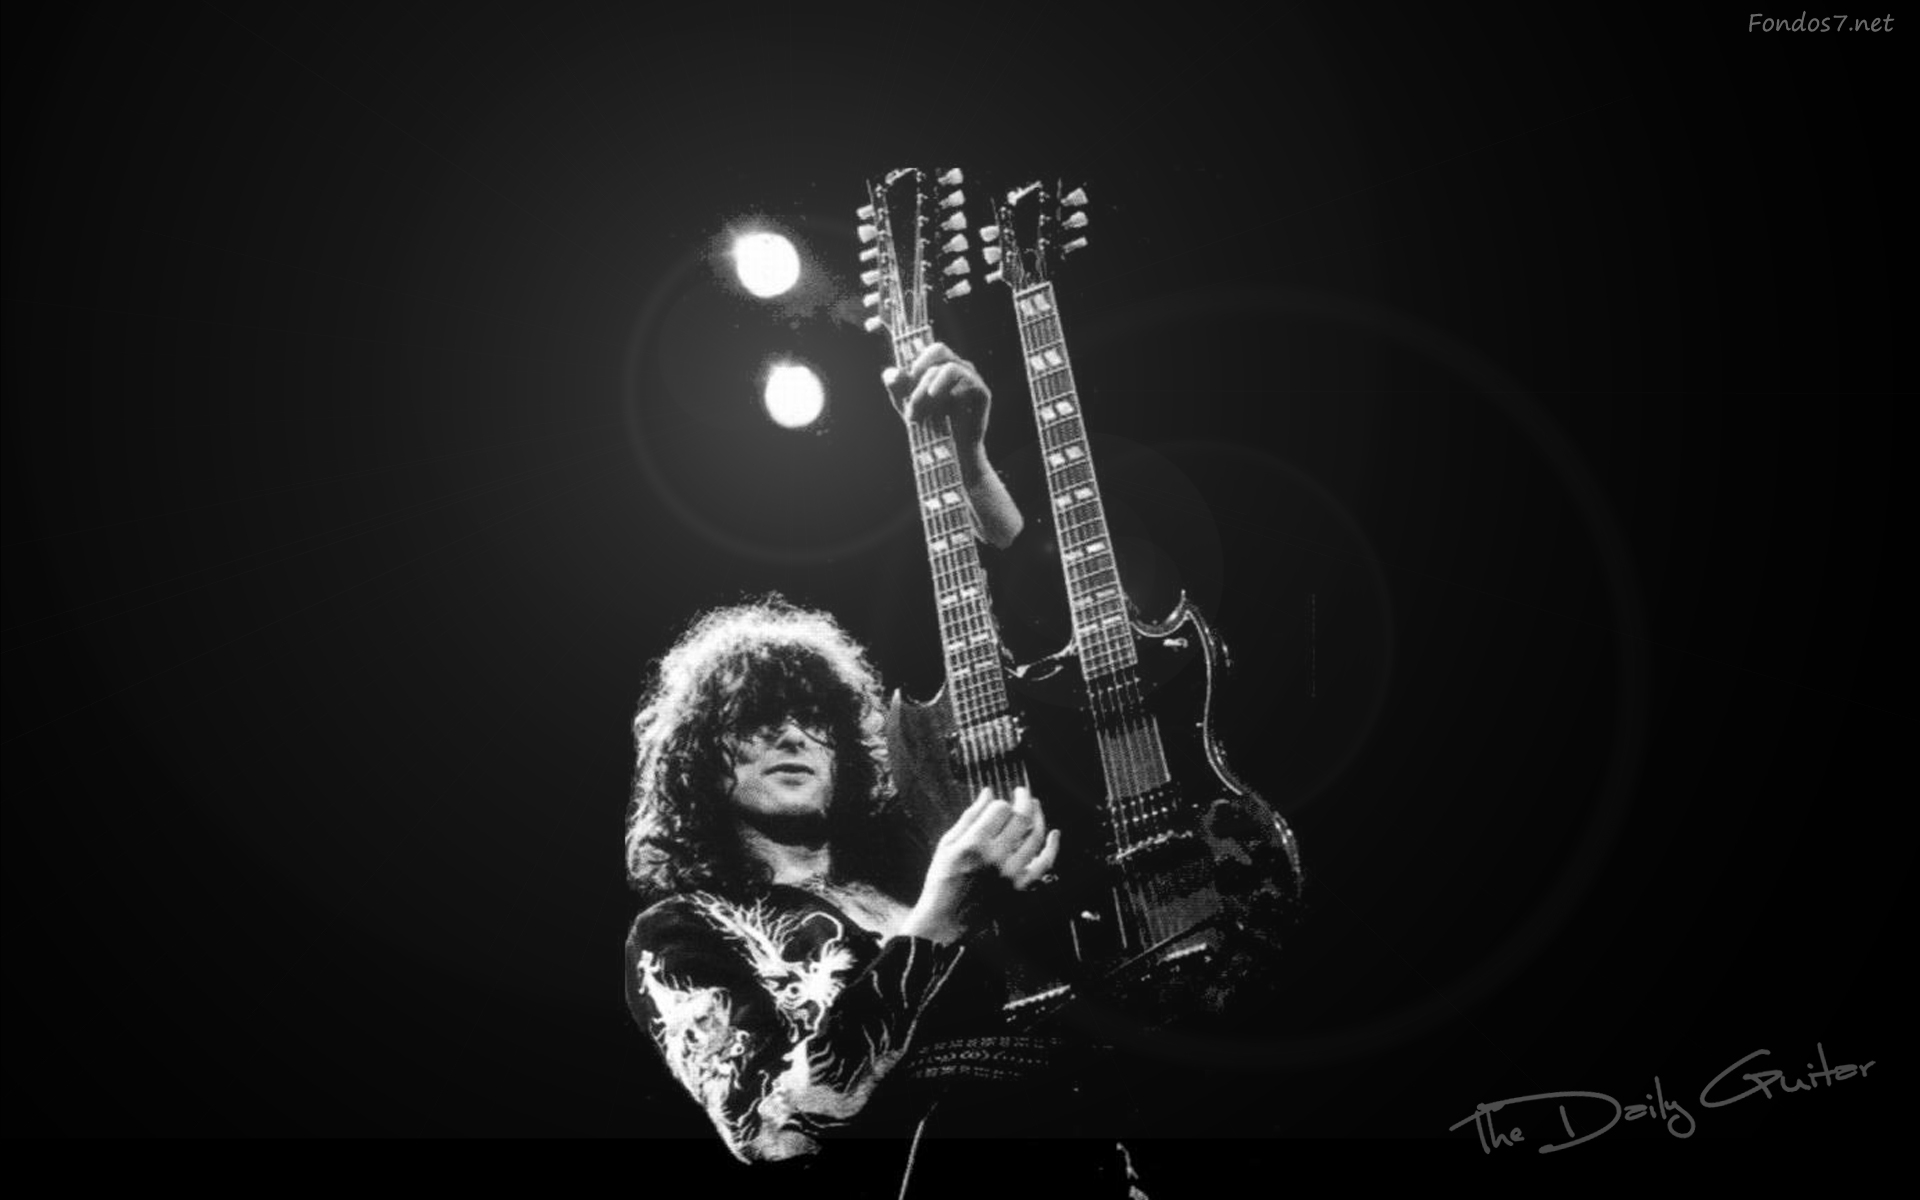 led zeppelin full hd wallpaper and background image